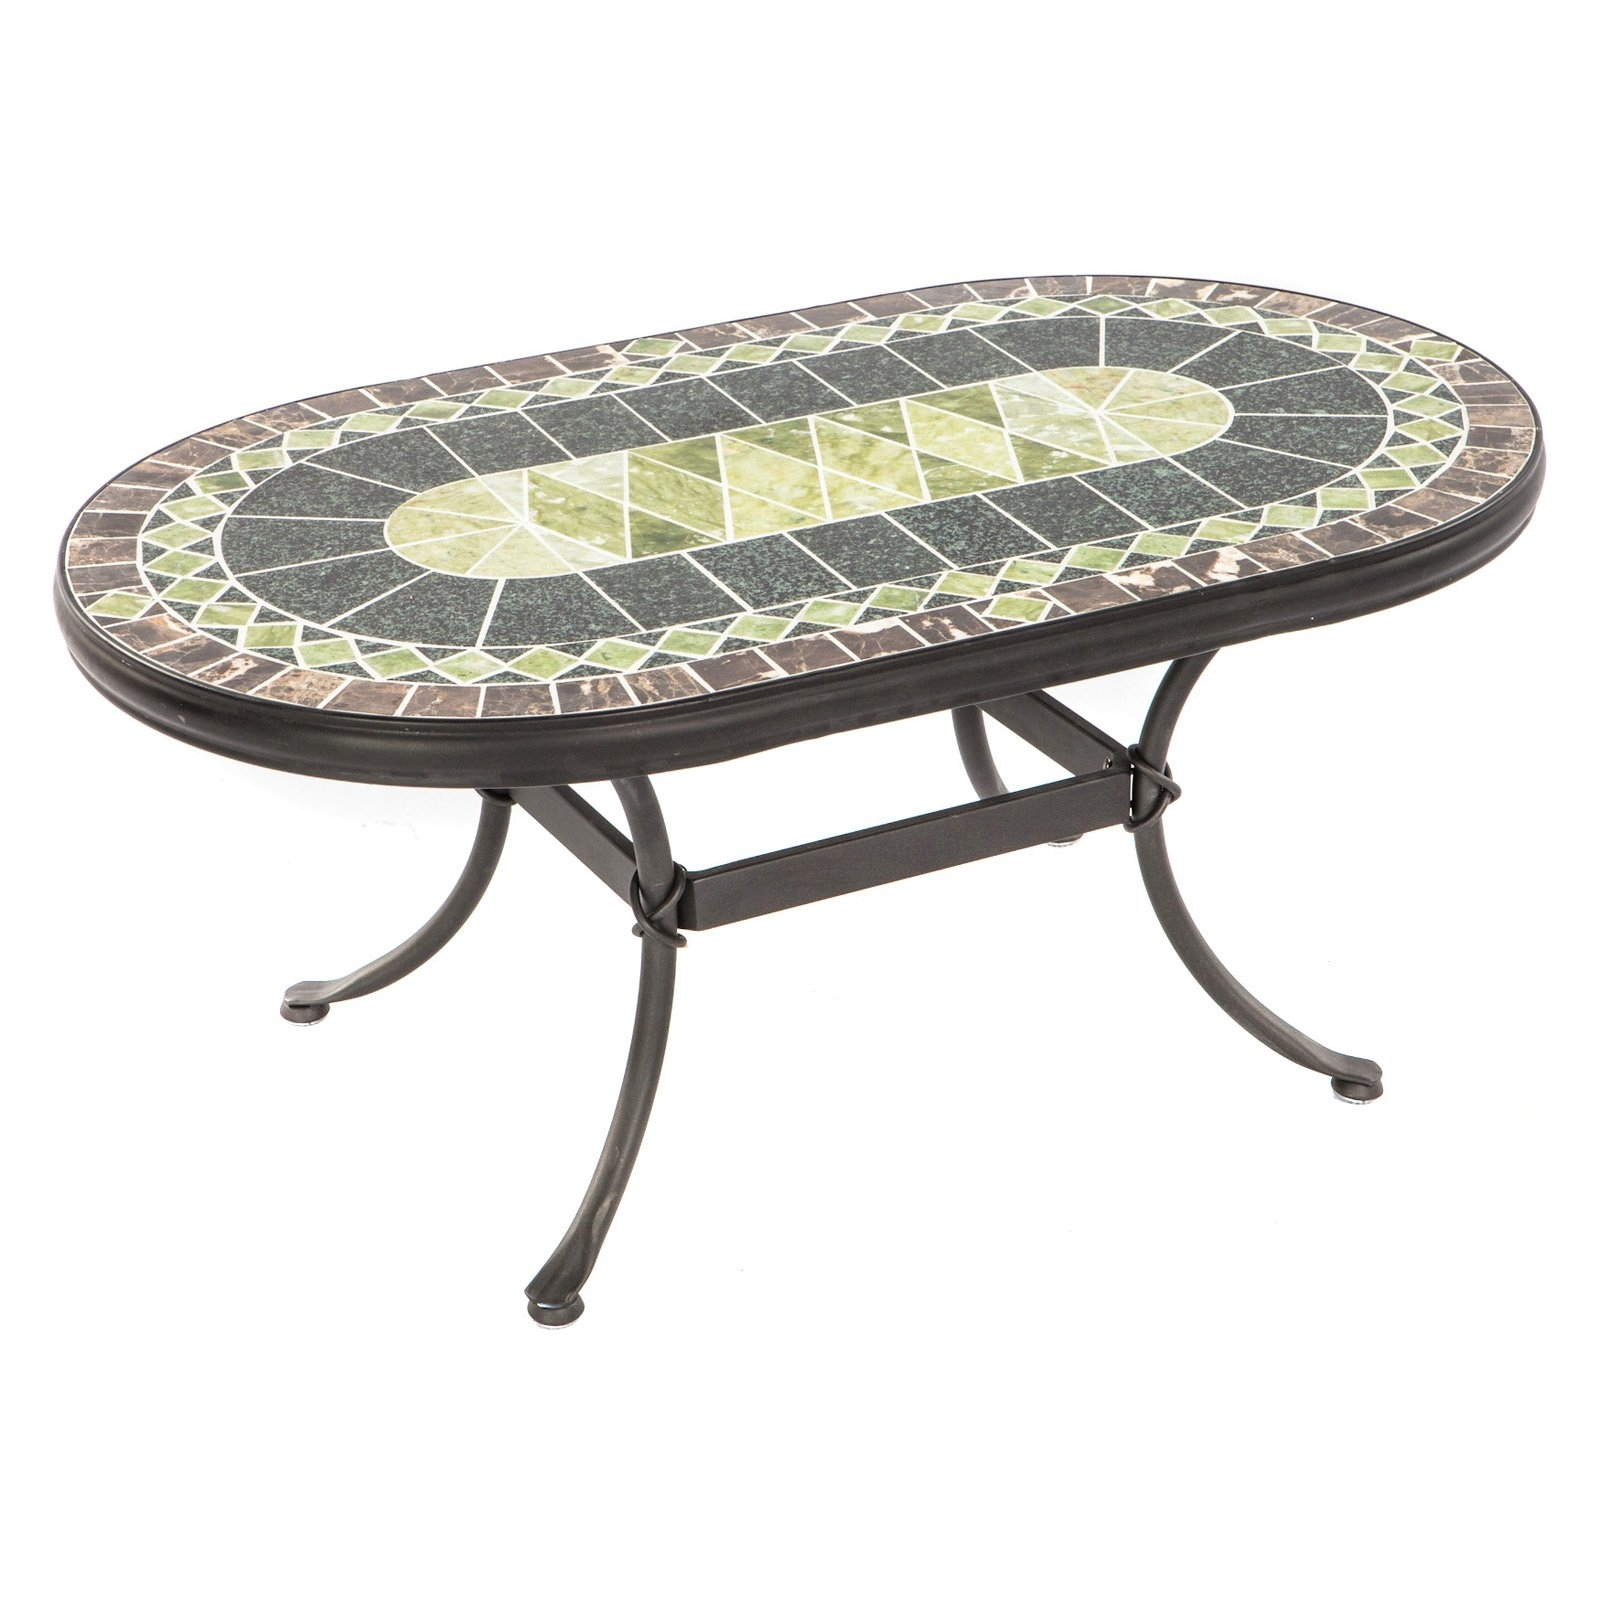 Beautiful Mosaic Accent Table With One Look At Pier 139s Elba Mosaic Pertaining To Famous Elba Ottoman Coffee Tables (View 20 of 20)